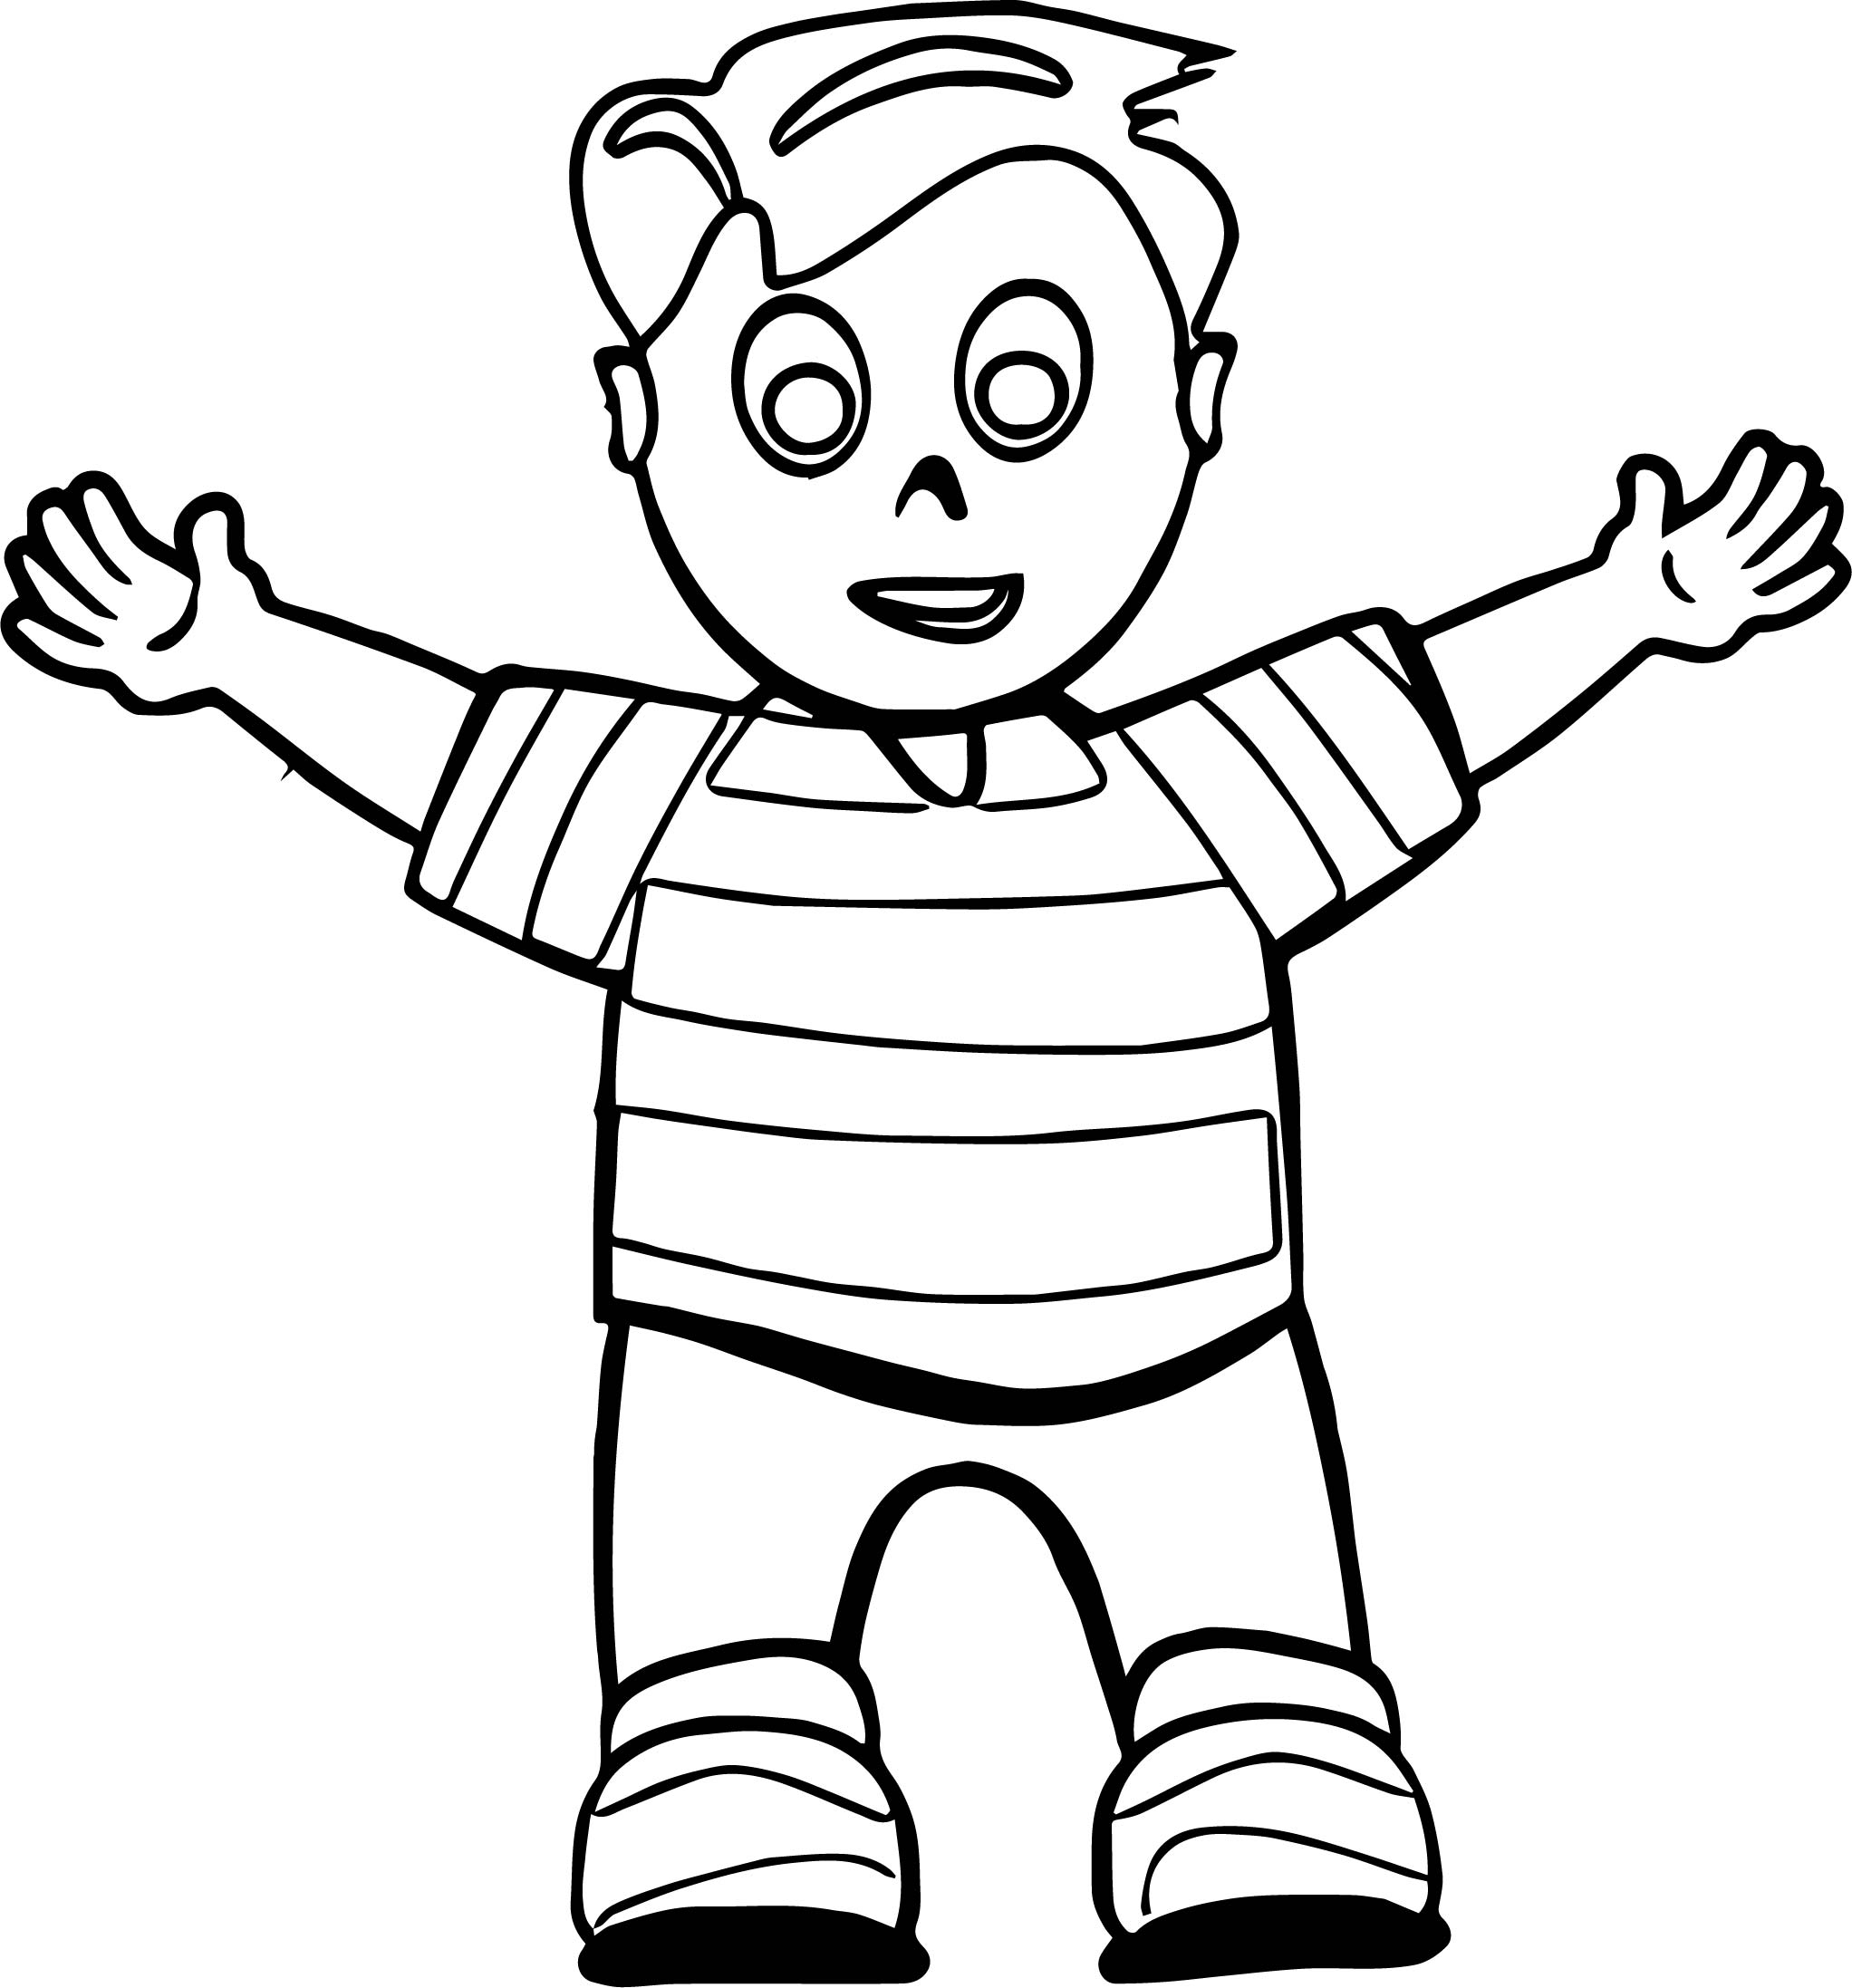 Hello Hug Boy Coloring Page